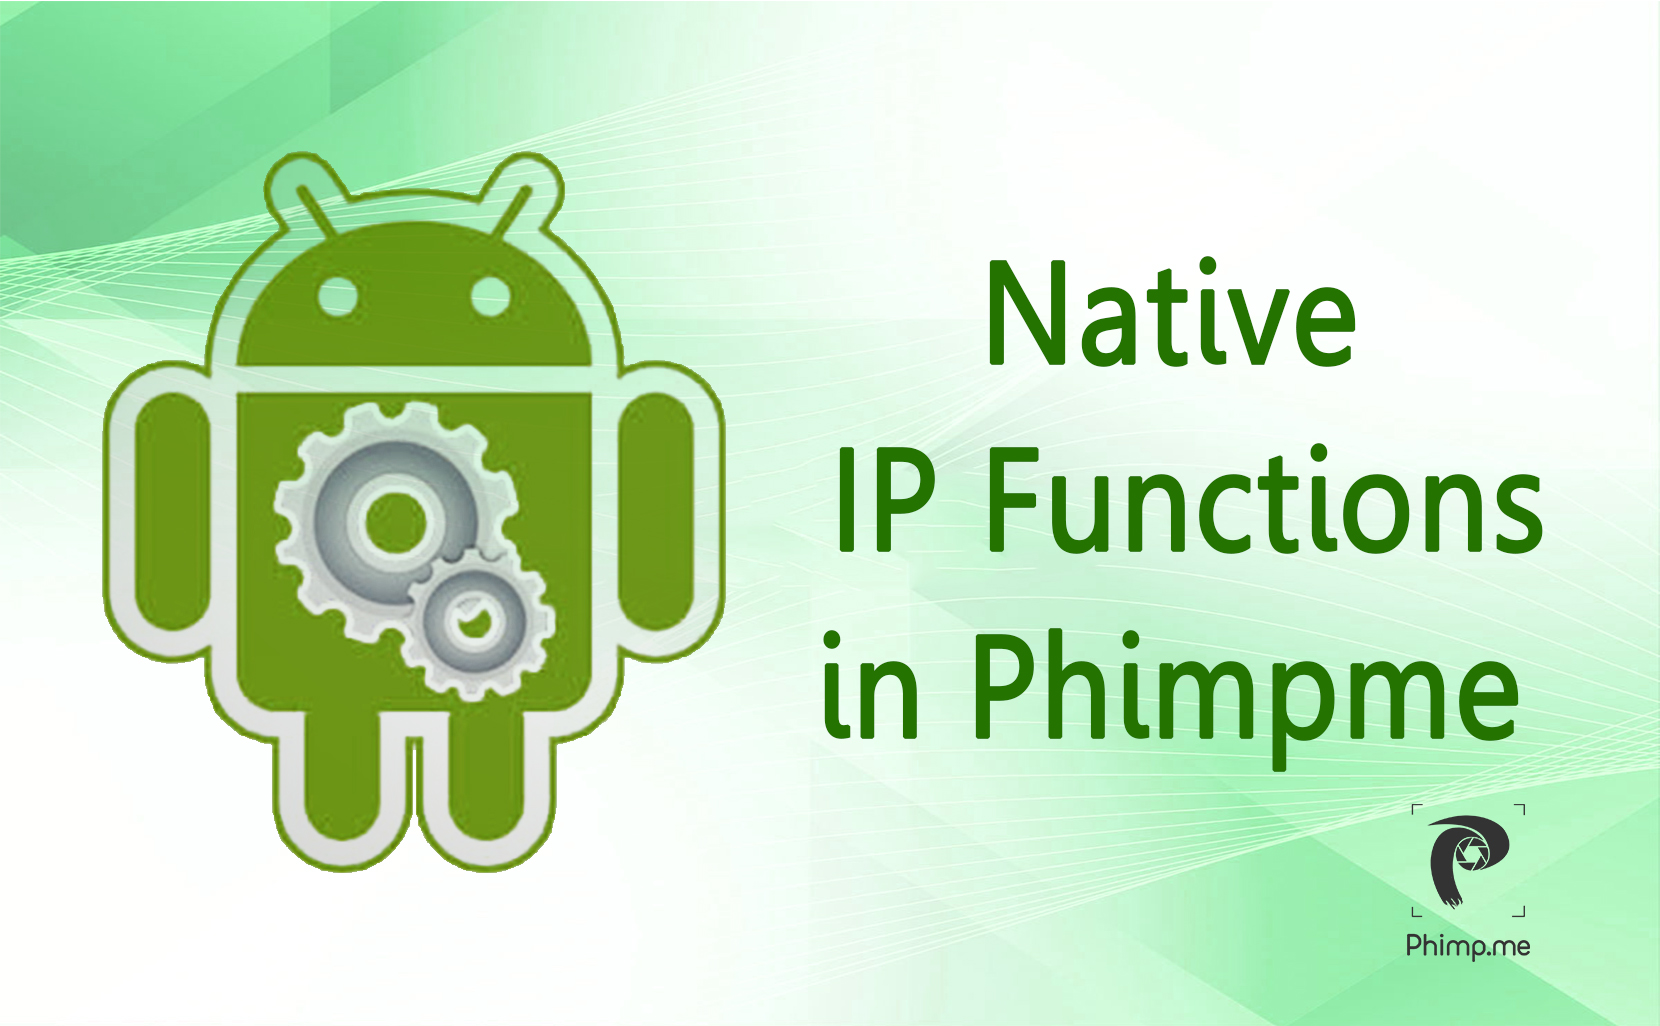 Native Functions for Performing Image Processing in Phimpme Android